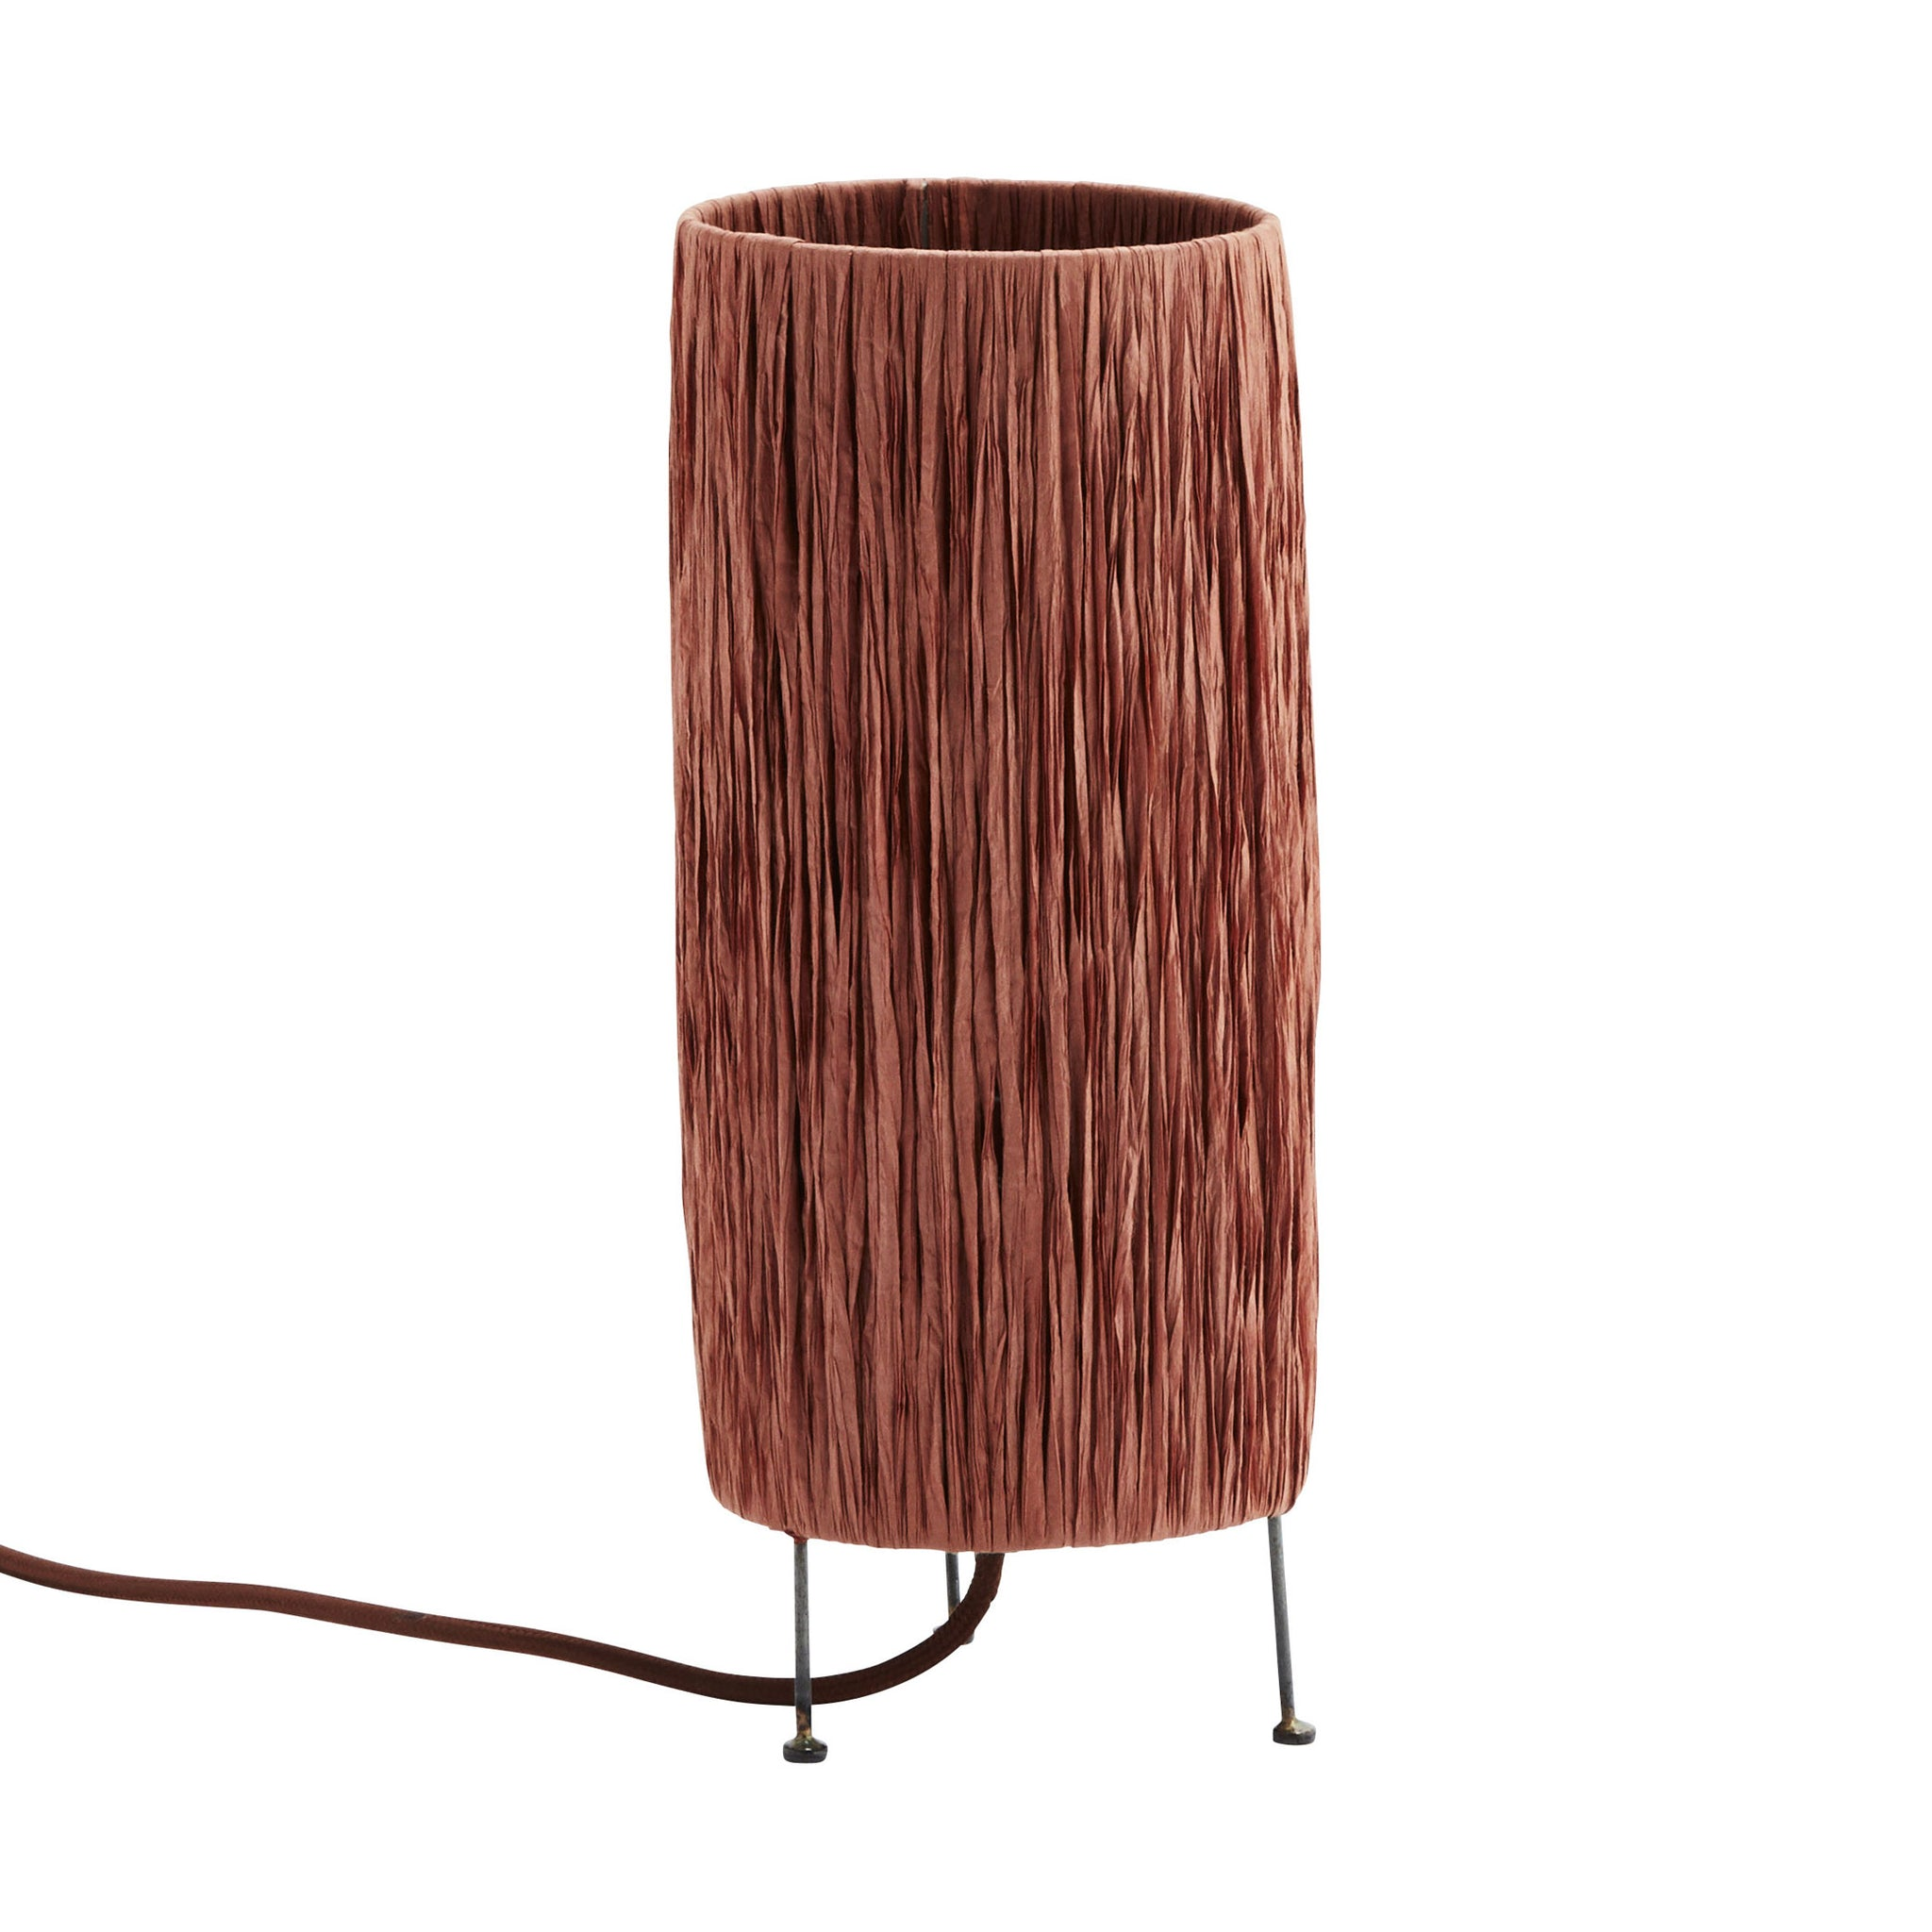 Raffia Palm 'Rust' Table Lamp